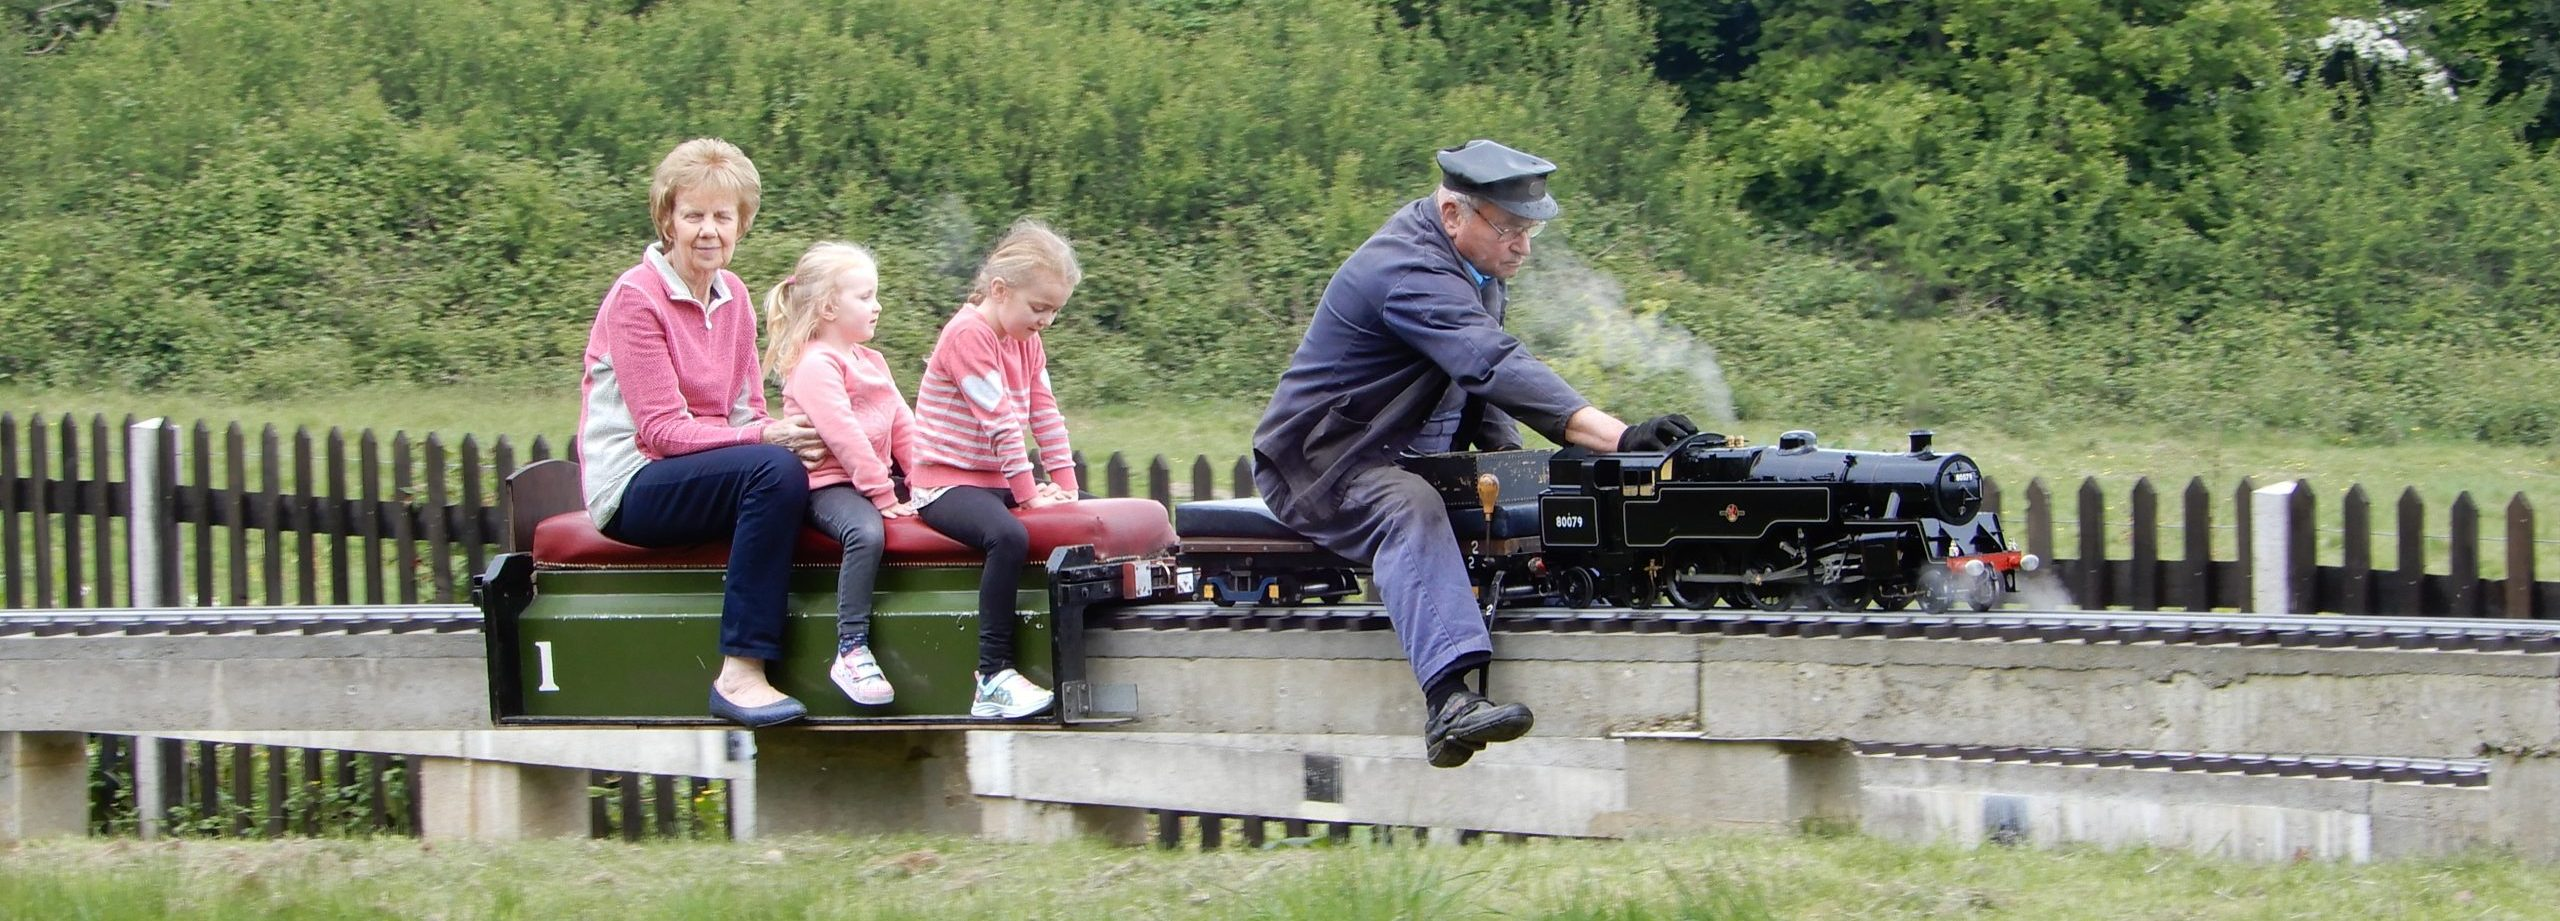 Crowborough Miniature Railway Easter Opening 2020